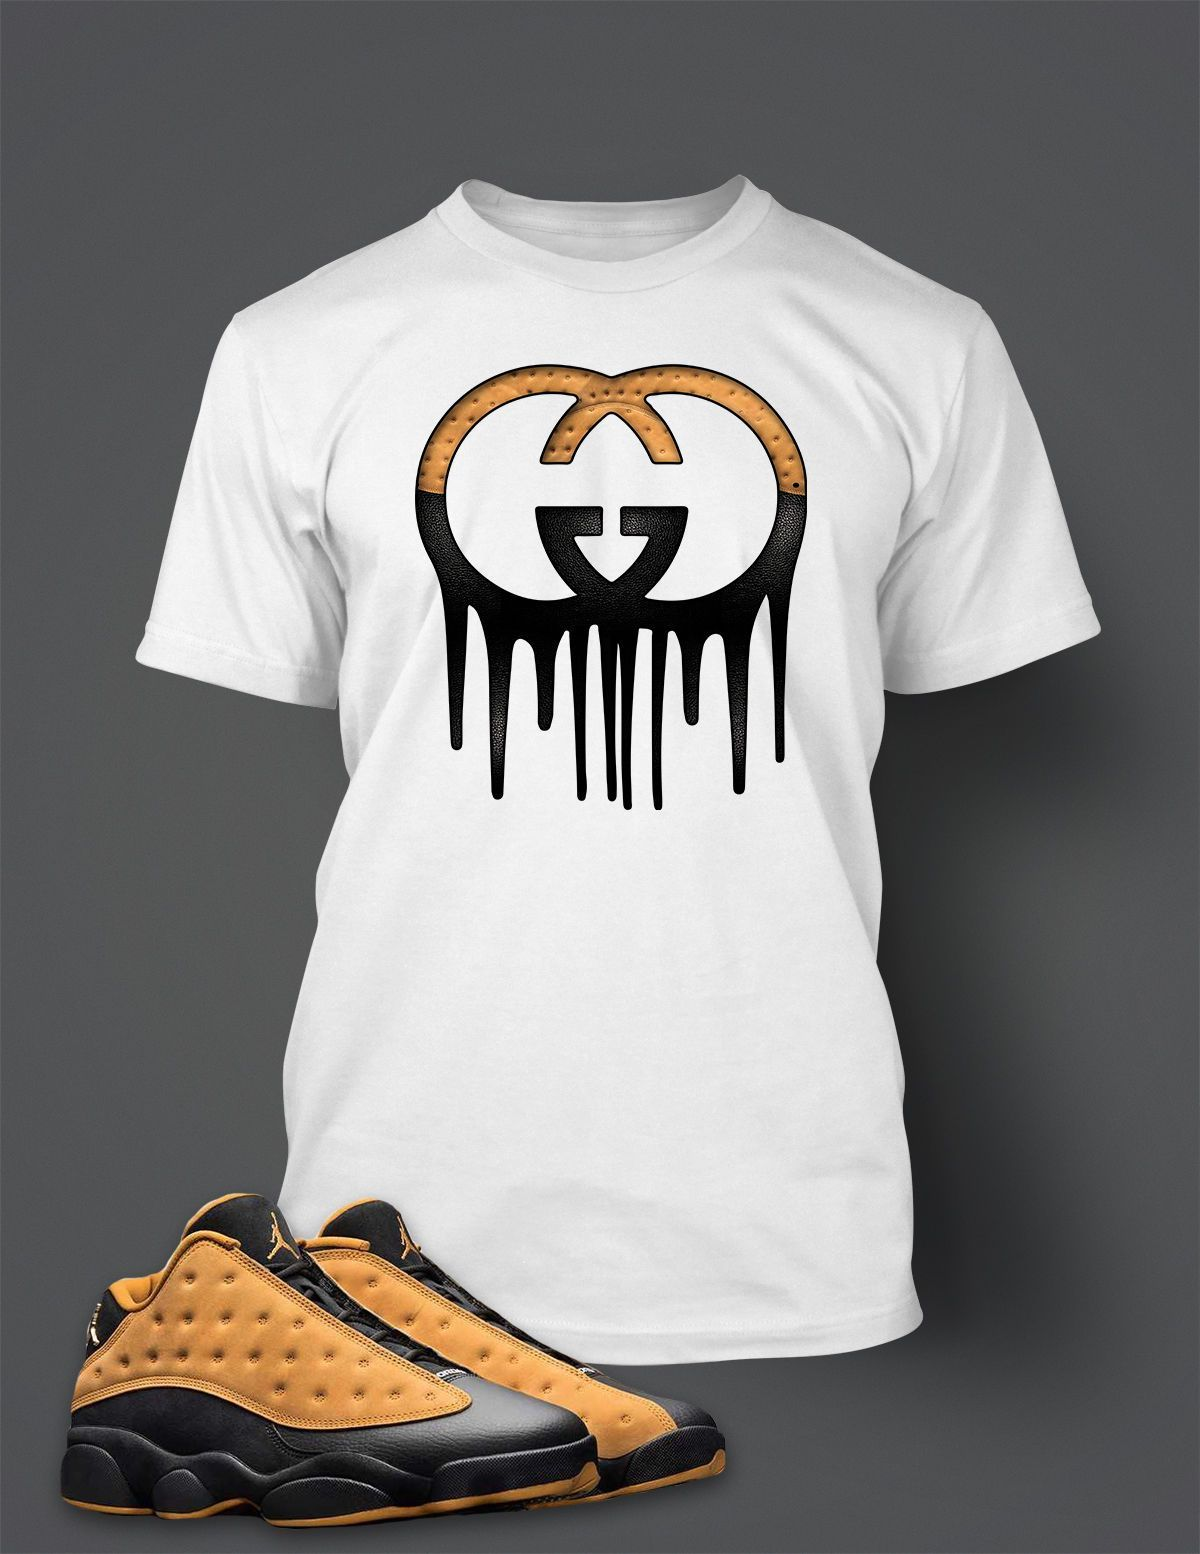 078fddd27d5e83 New Graphic T Shirt to Match Retro Air Jordan 13 Low Chutney Shoe